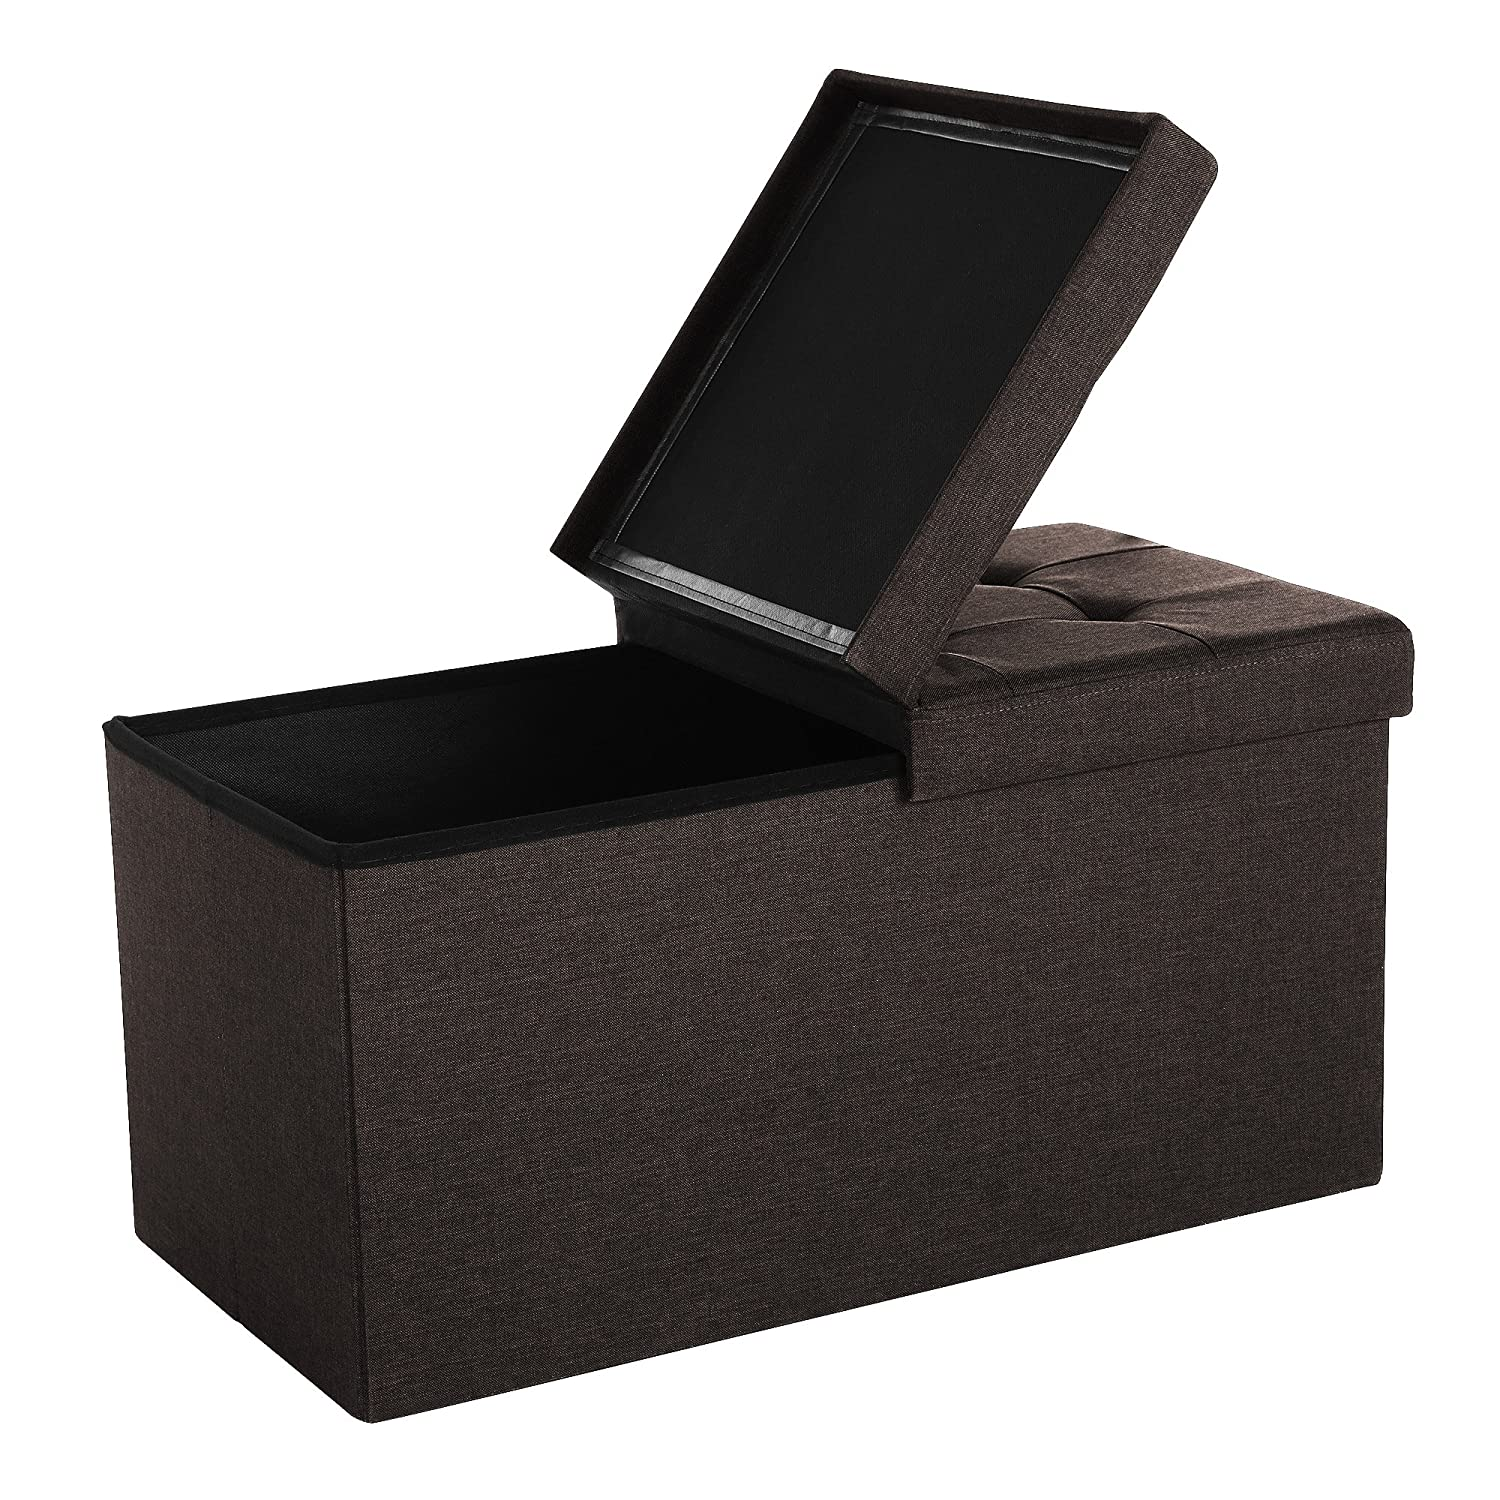 SONGMICS Large Folding Storage Ottoman Toy Chest Max Load 300 kg Linen Fabric Dark brown 76 x 38 x 38 cm LSF47Q